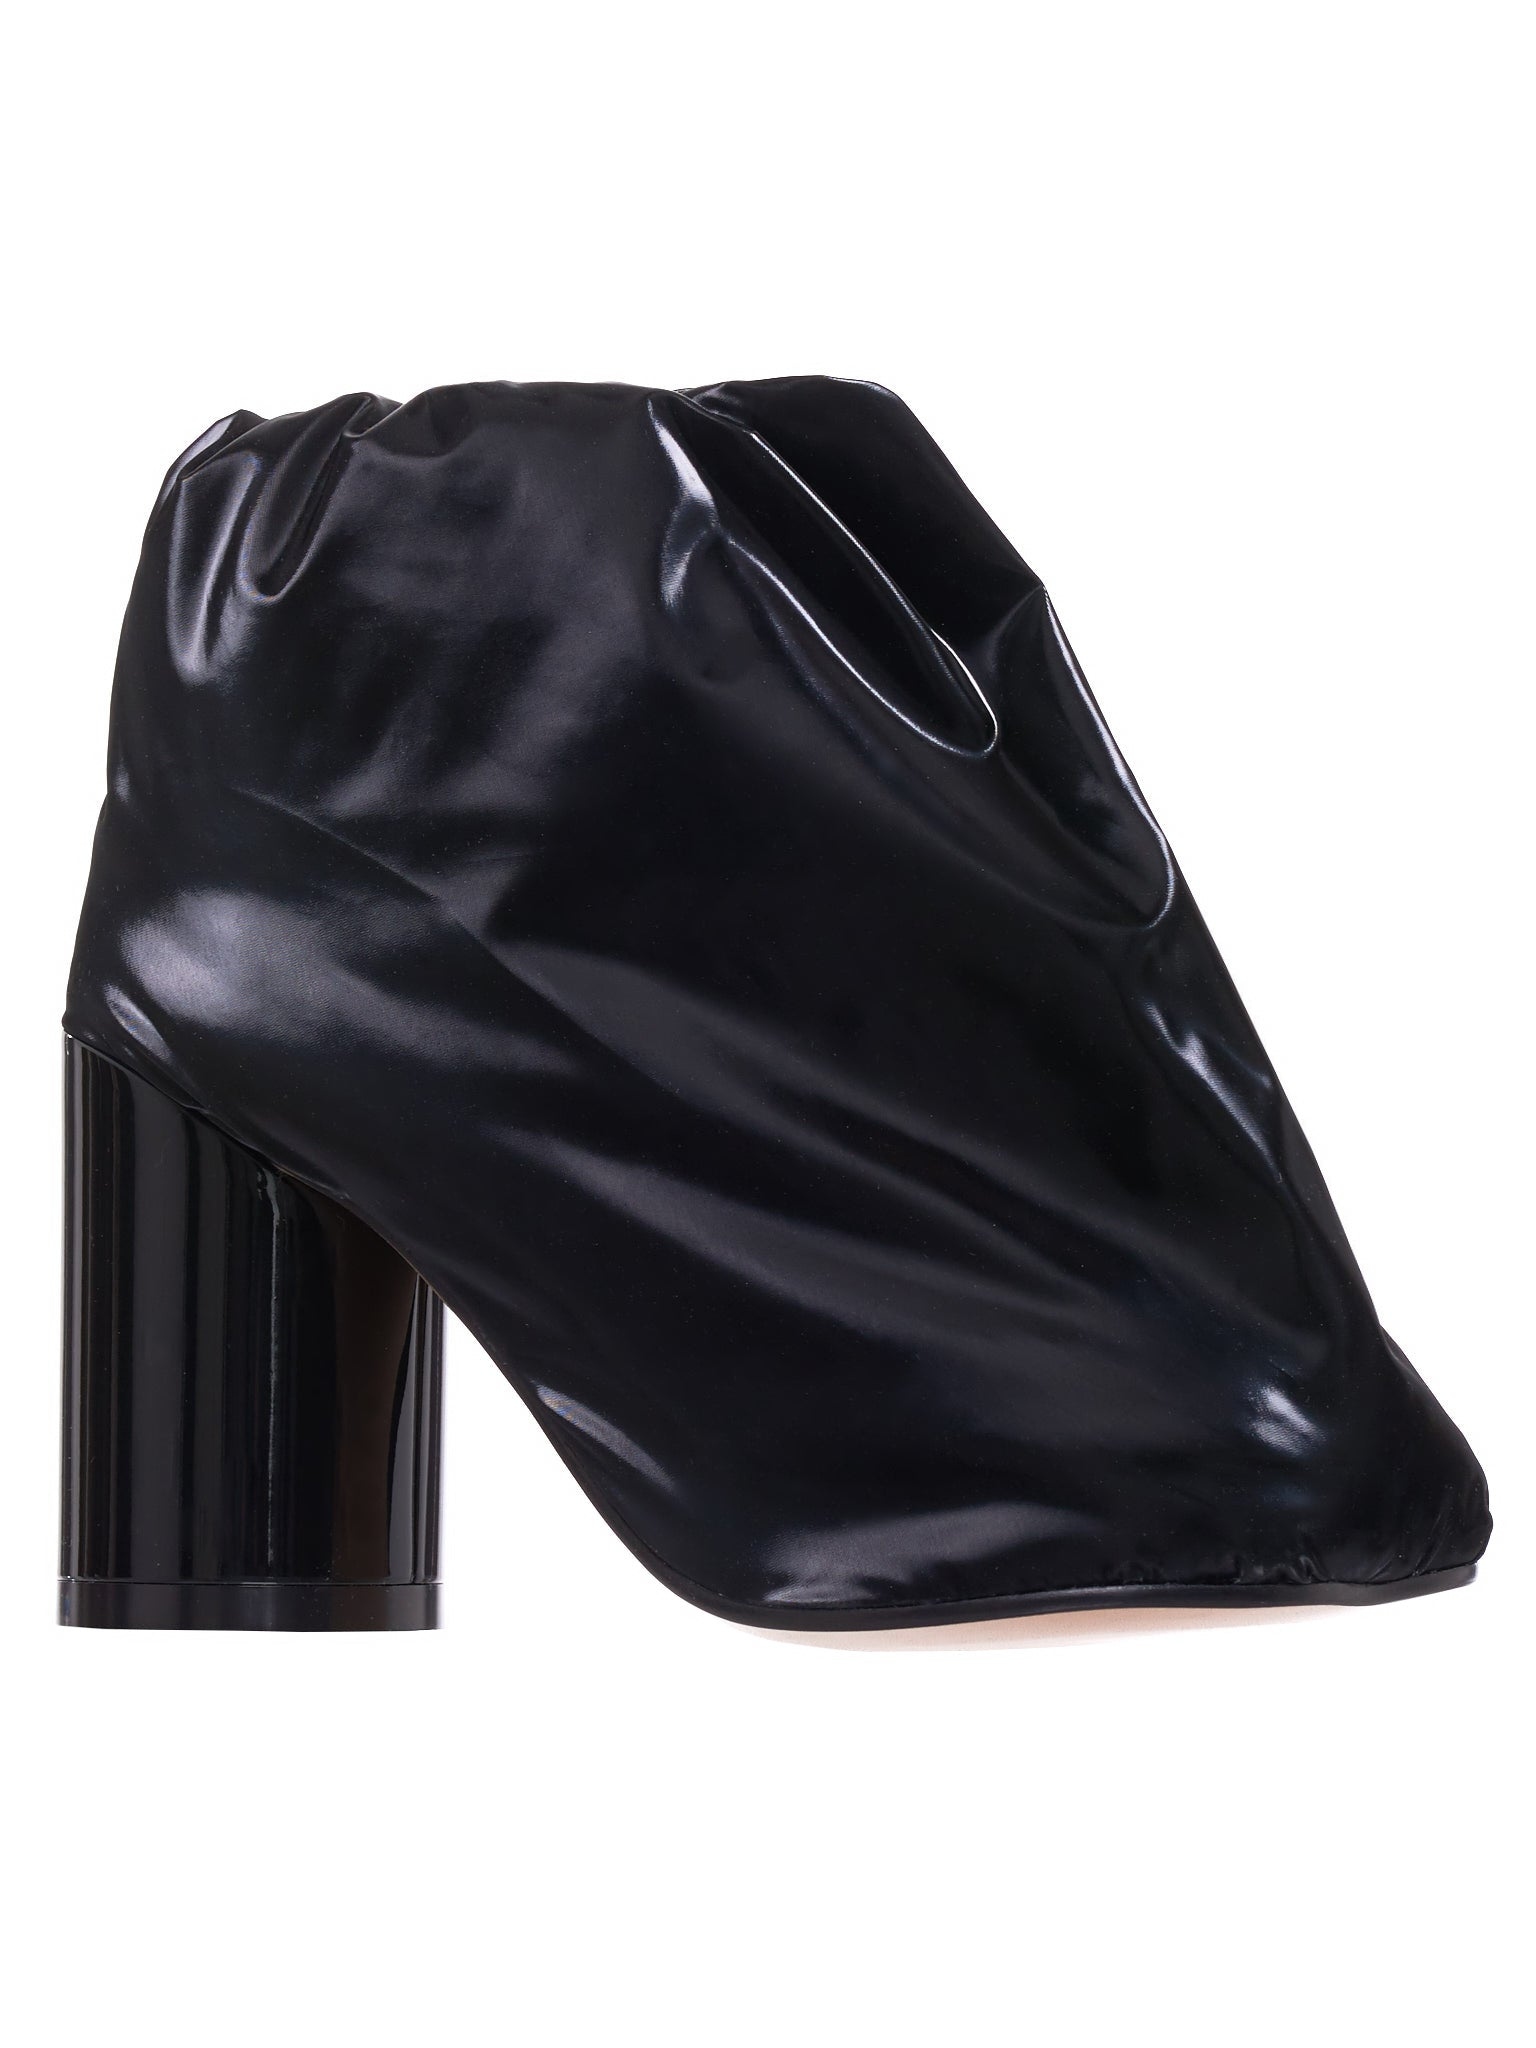 MM6 Maison Margiela Boots - Hlorenzo Side